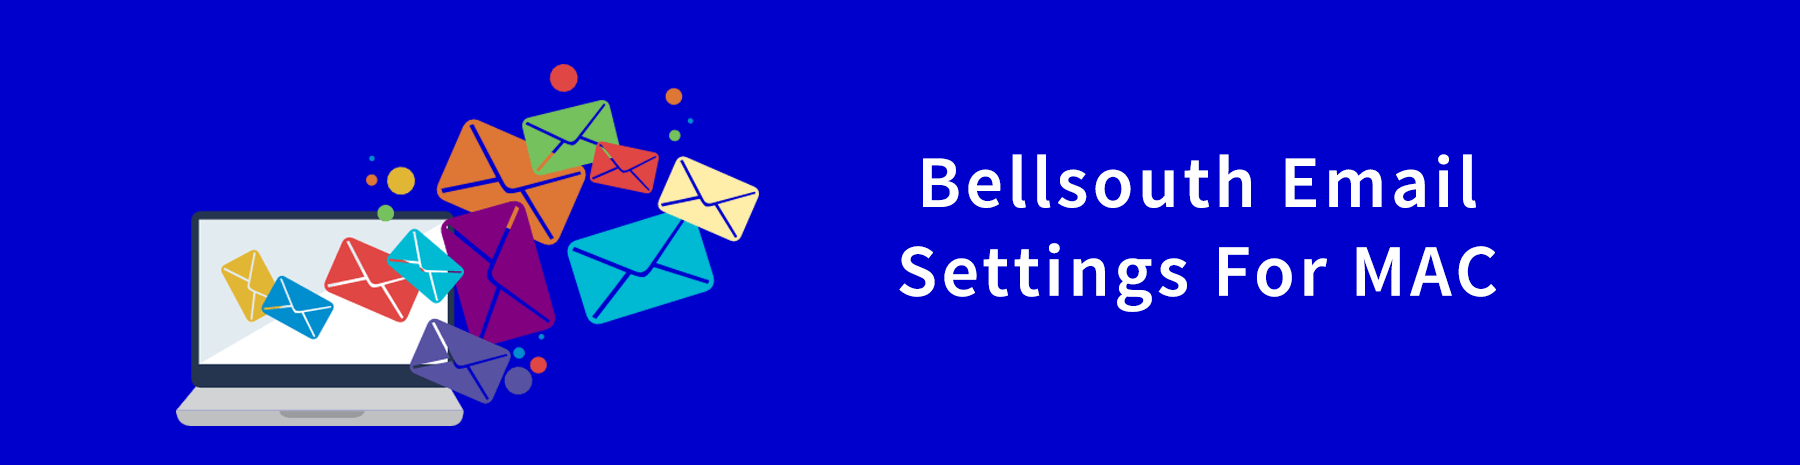 Bellsouth Email Settings For Mac